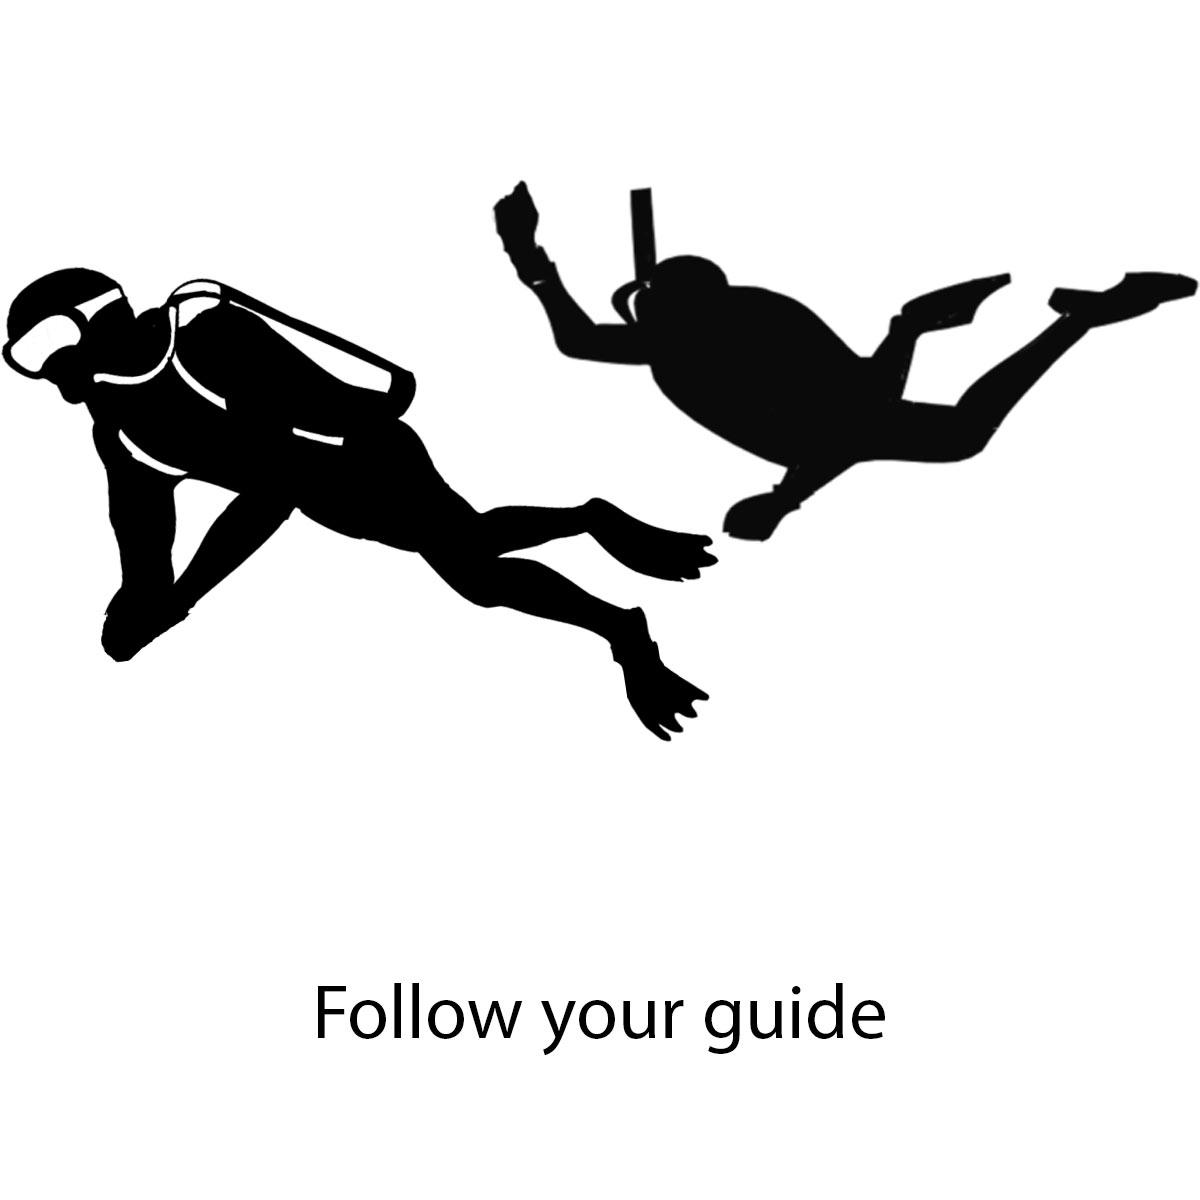 follow-your-guide.jpg